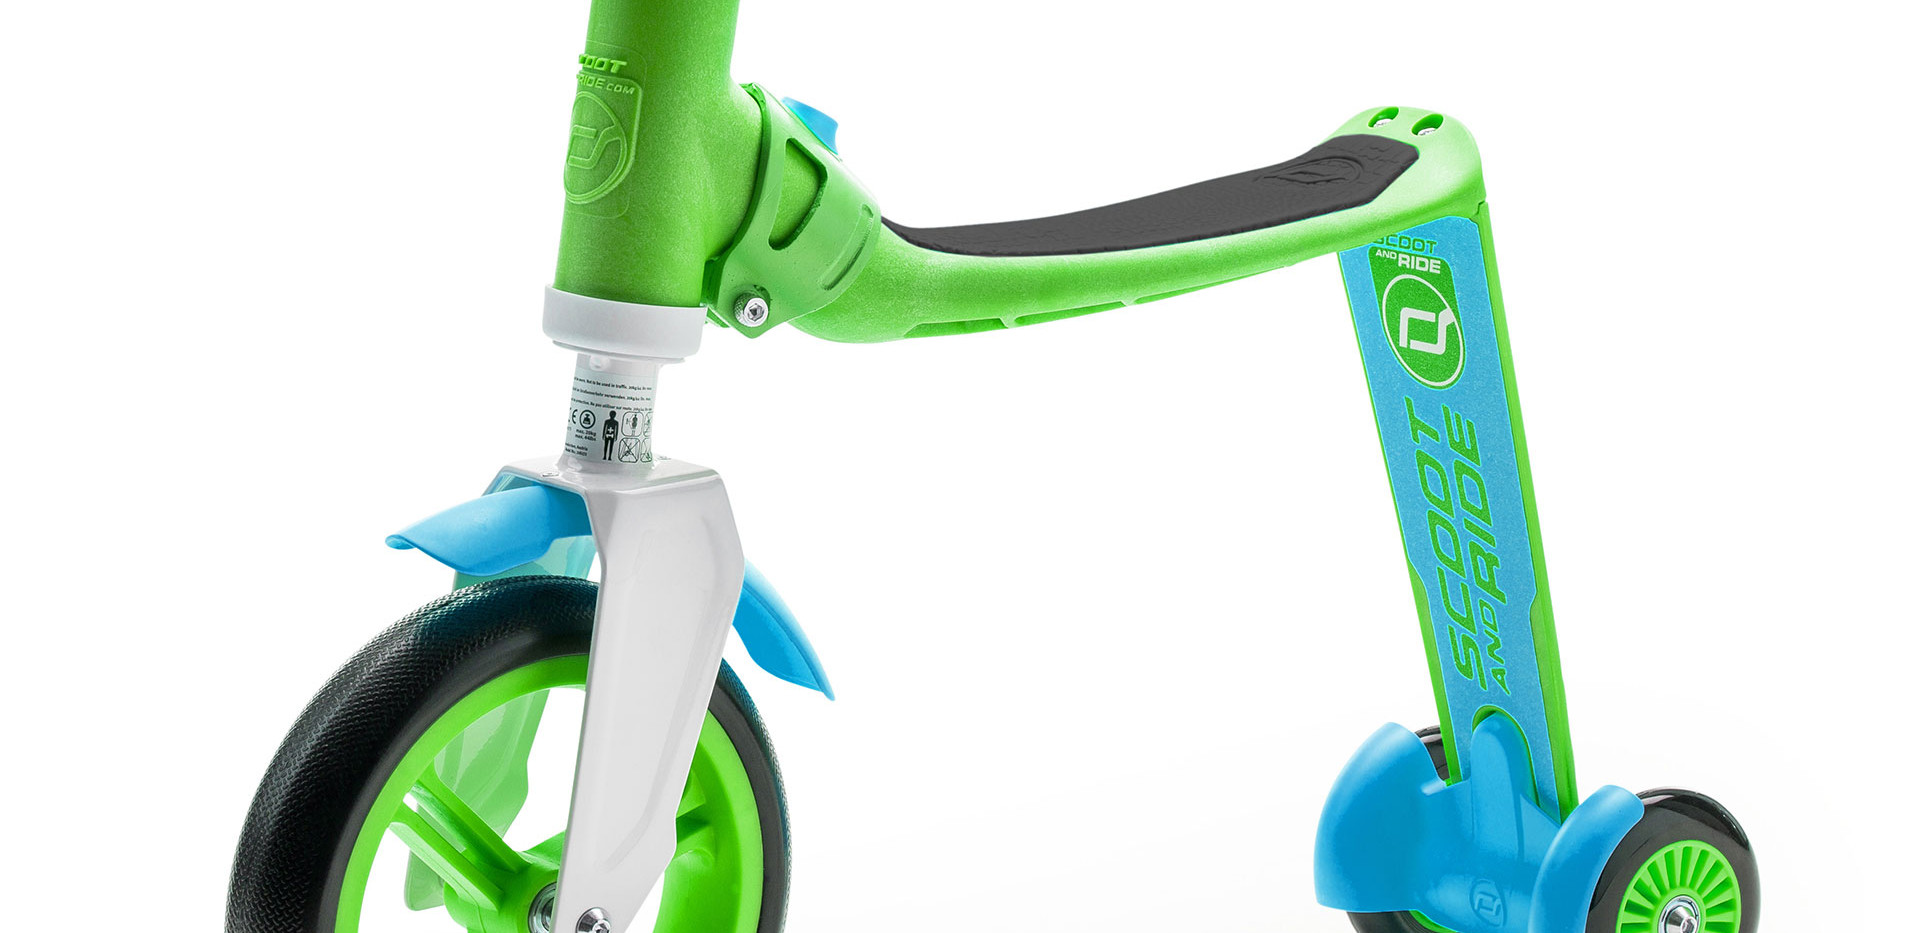 size_product_shoppicture_Baby+_green-blu